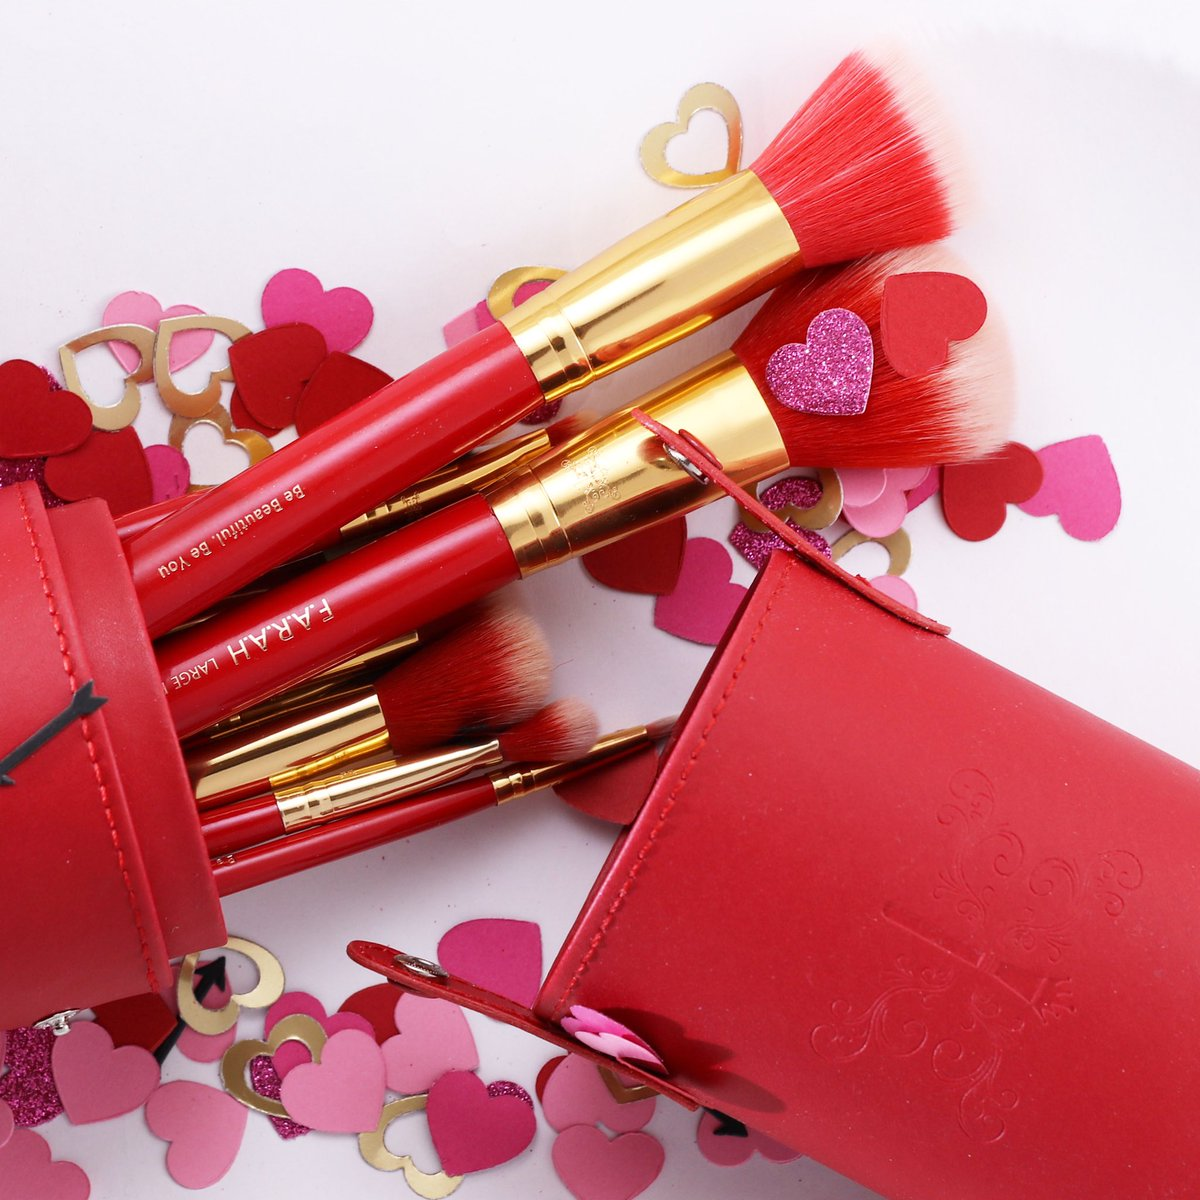 The month of love may be coming to an end, but you don't need a reason to show love any time of year. ❤️ https://farahbrushes.com/product/redsirenset/…  #farahbrushes #monthoflove #february #red  #love #valentine #luxury #siren #gold #beauty #bebeautiful #beyou #luxe #luxurylifestyle